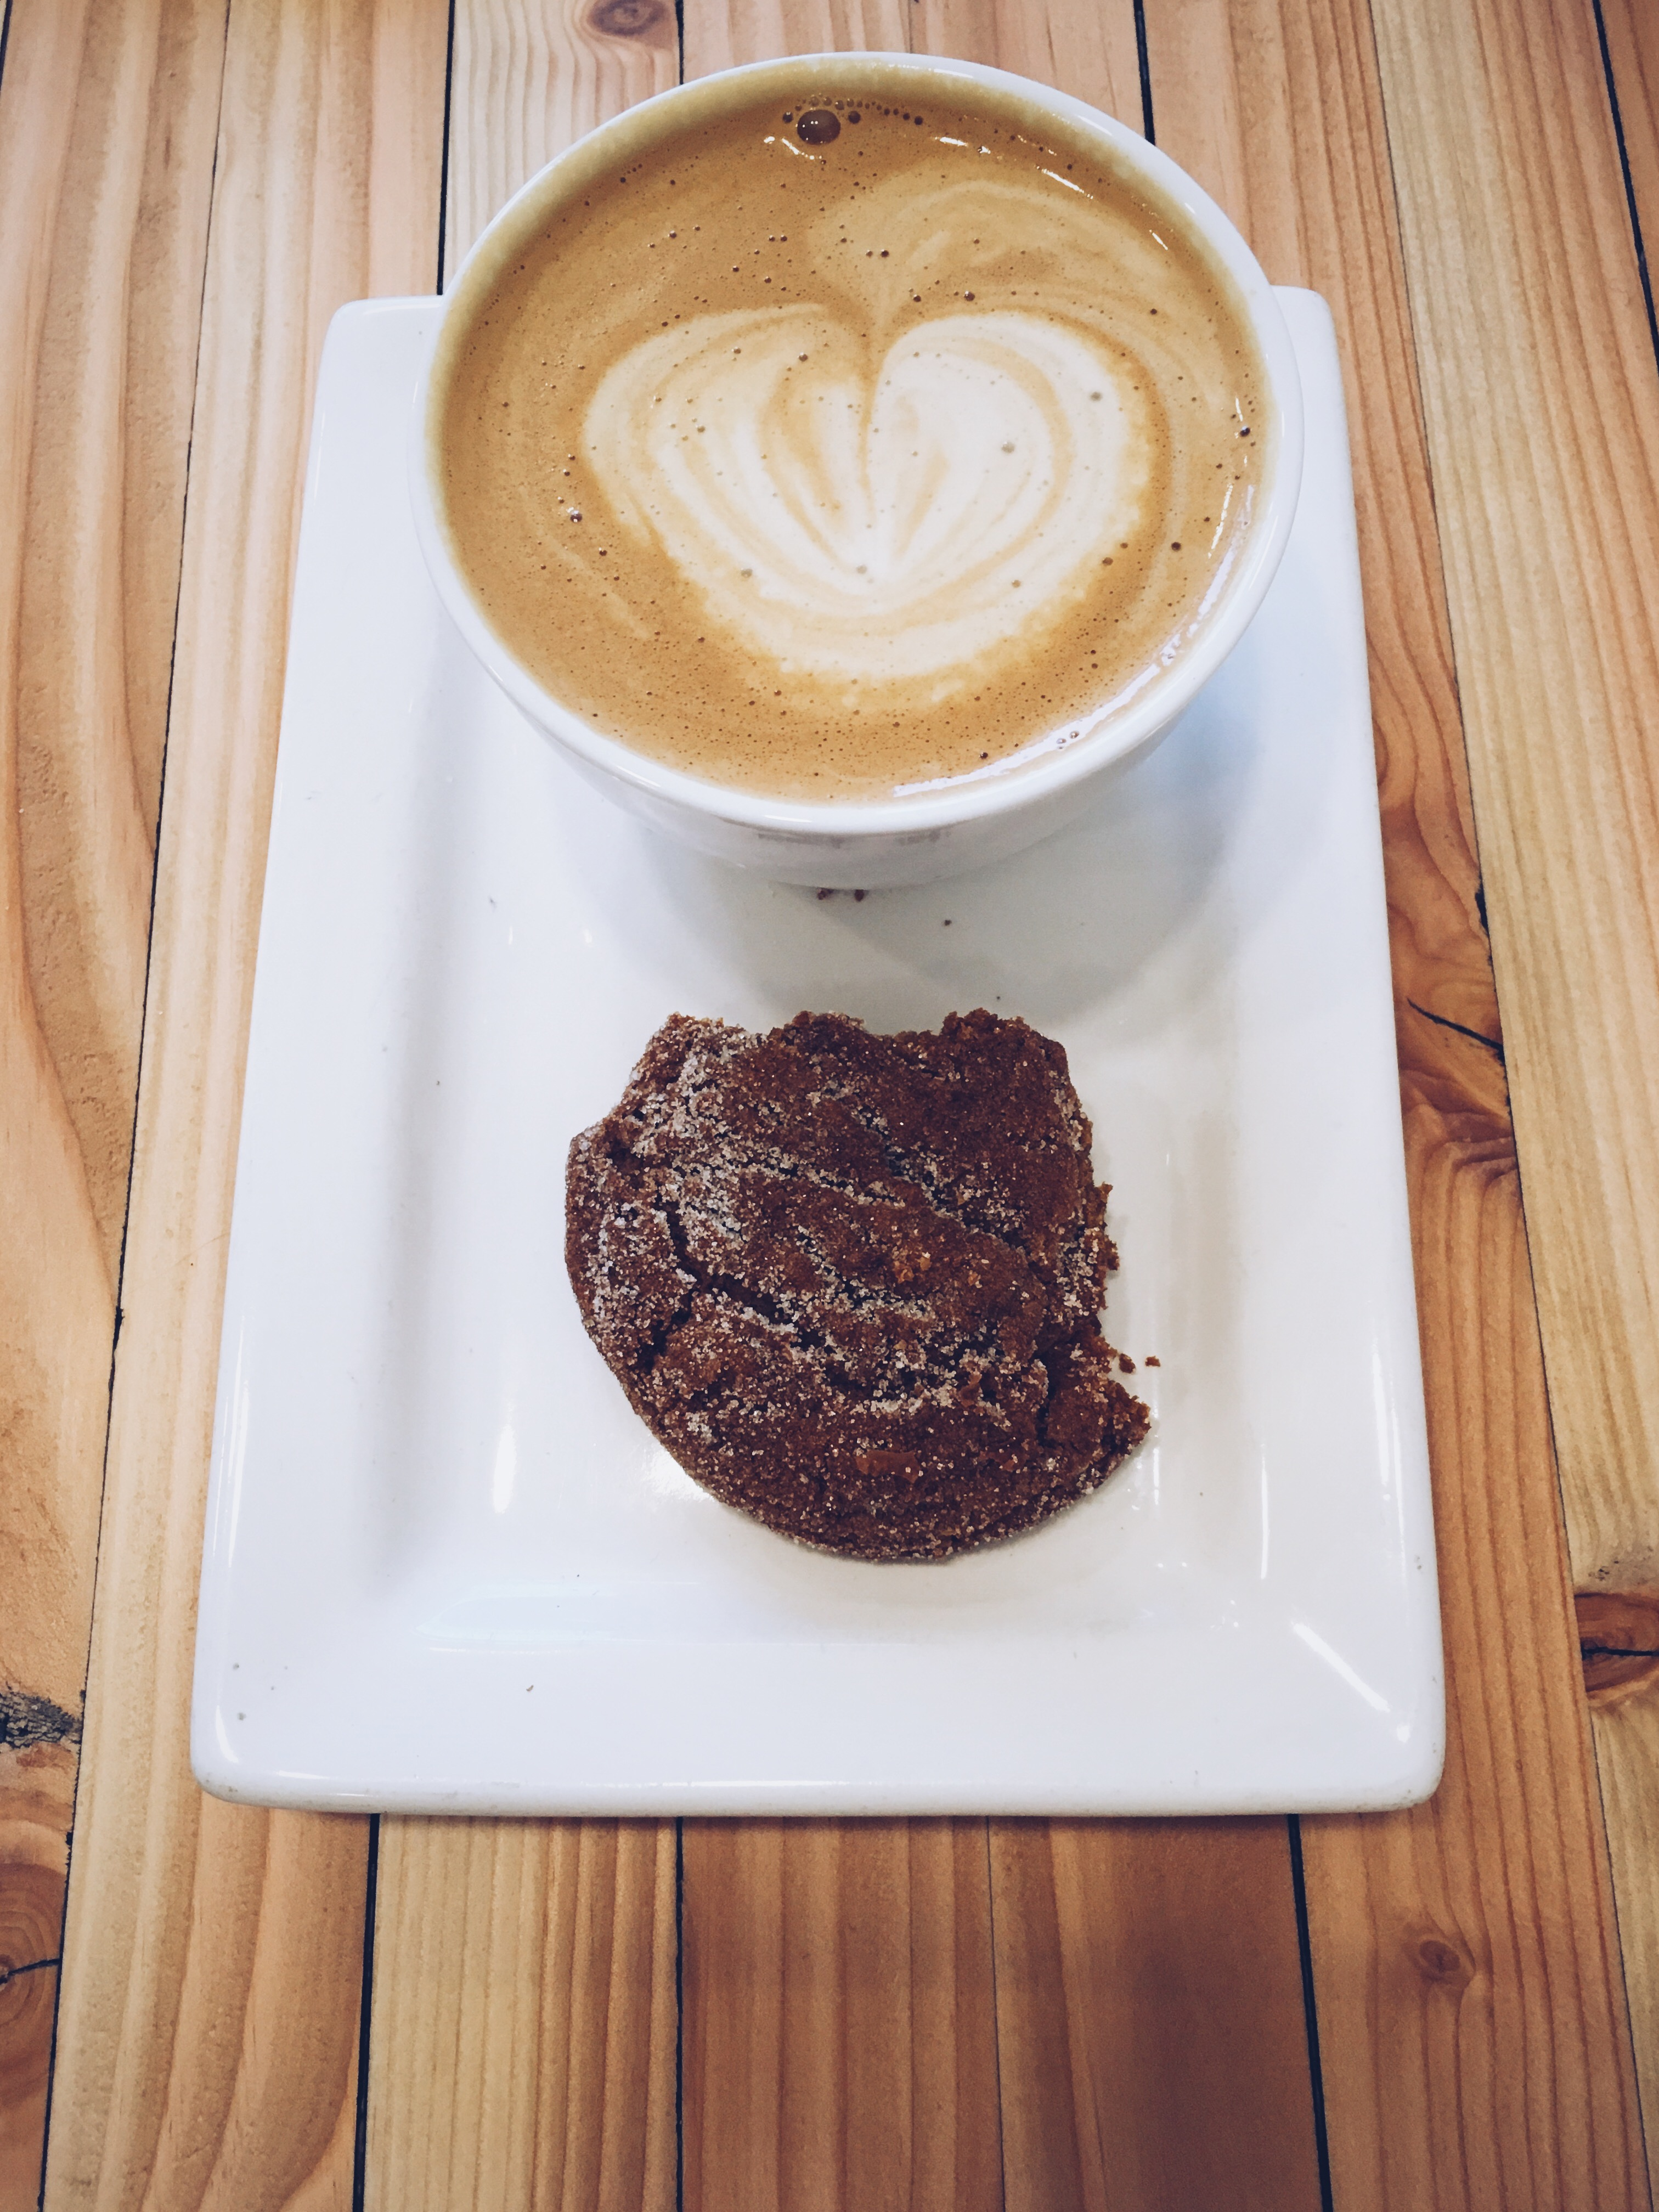 Almond milk cappuccino + Ginger snap cookie